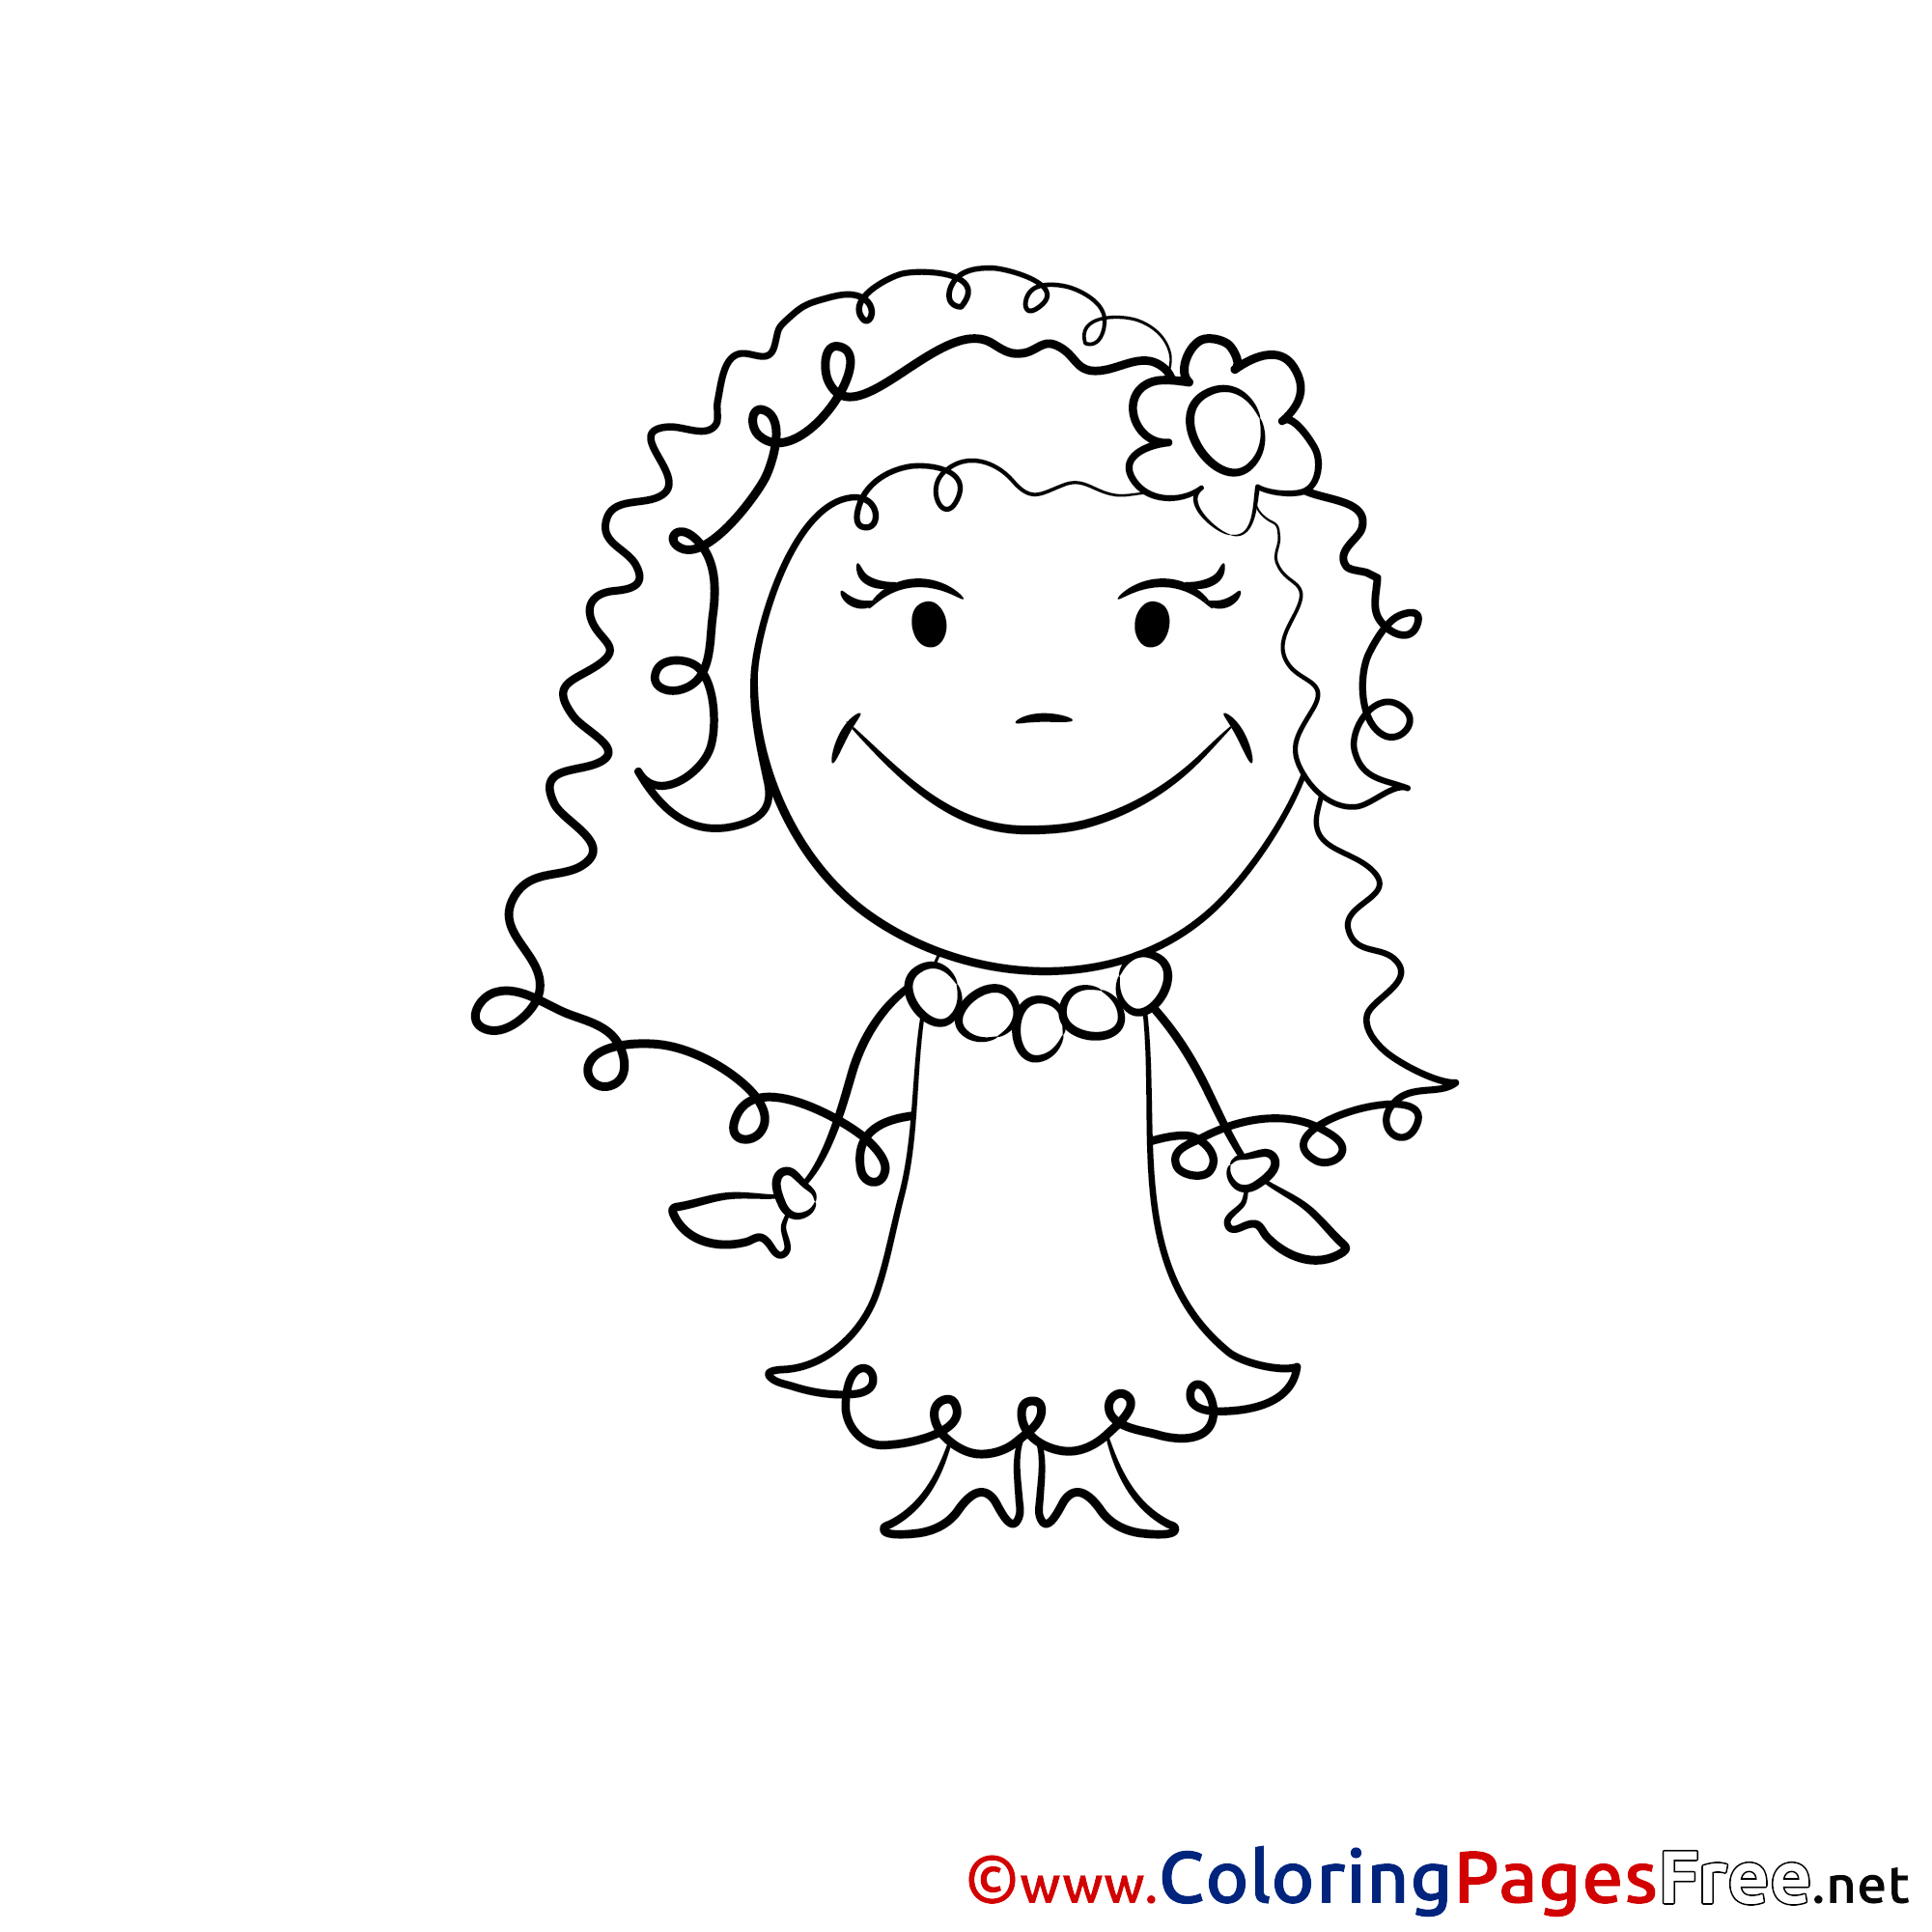 Letter C is for Cake coloring page  Free Printable